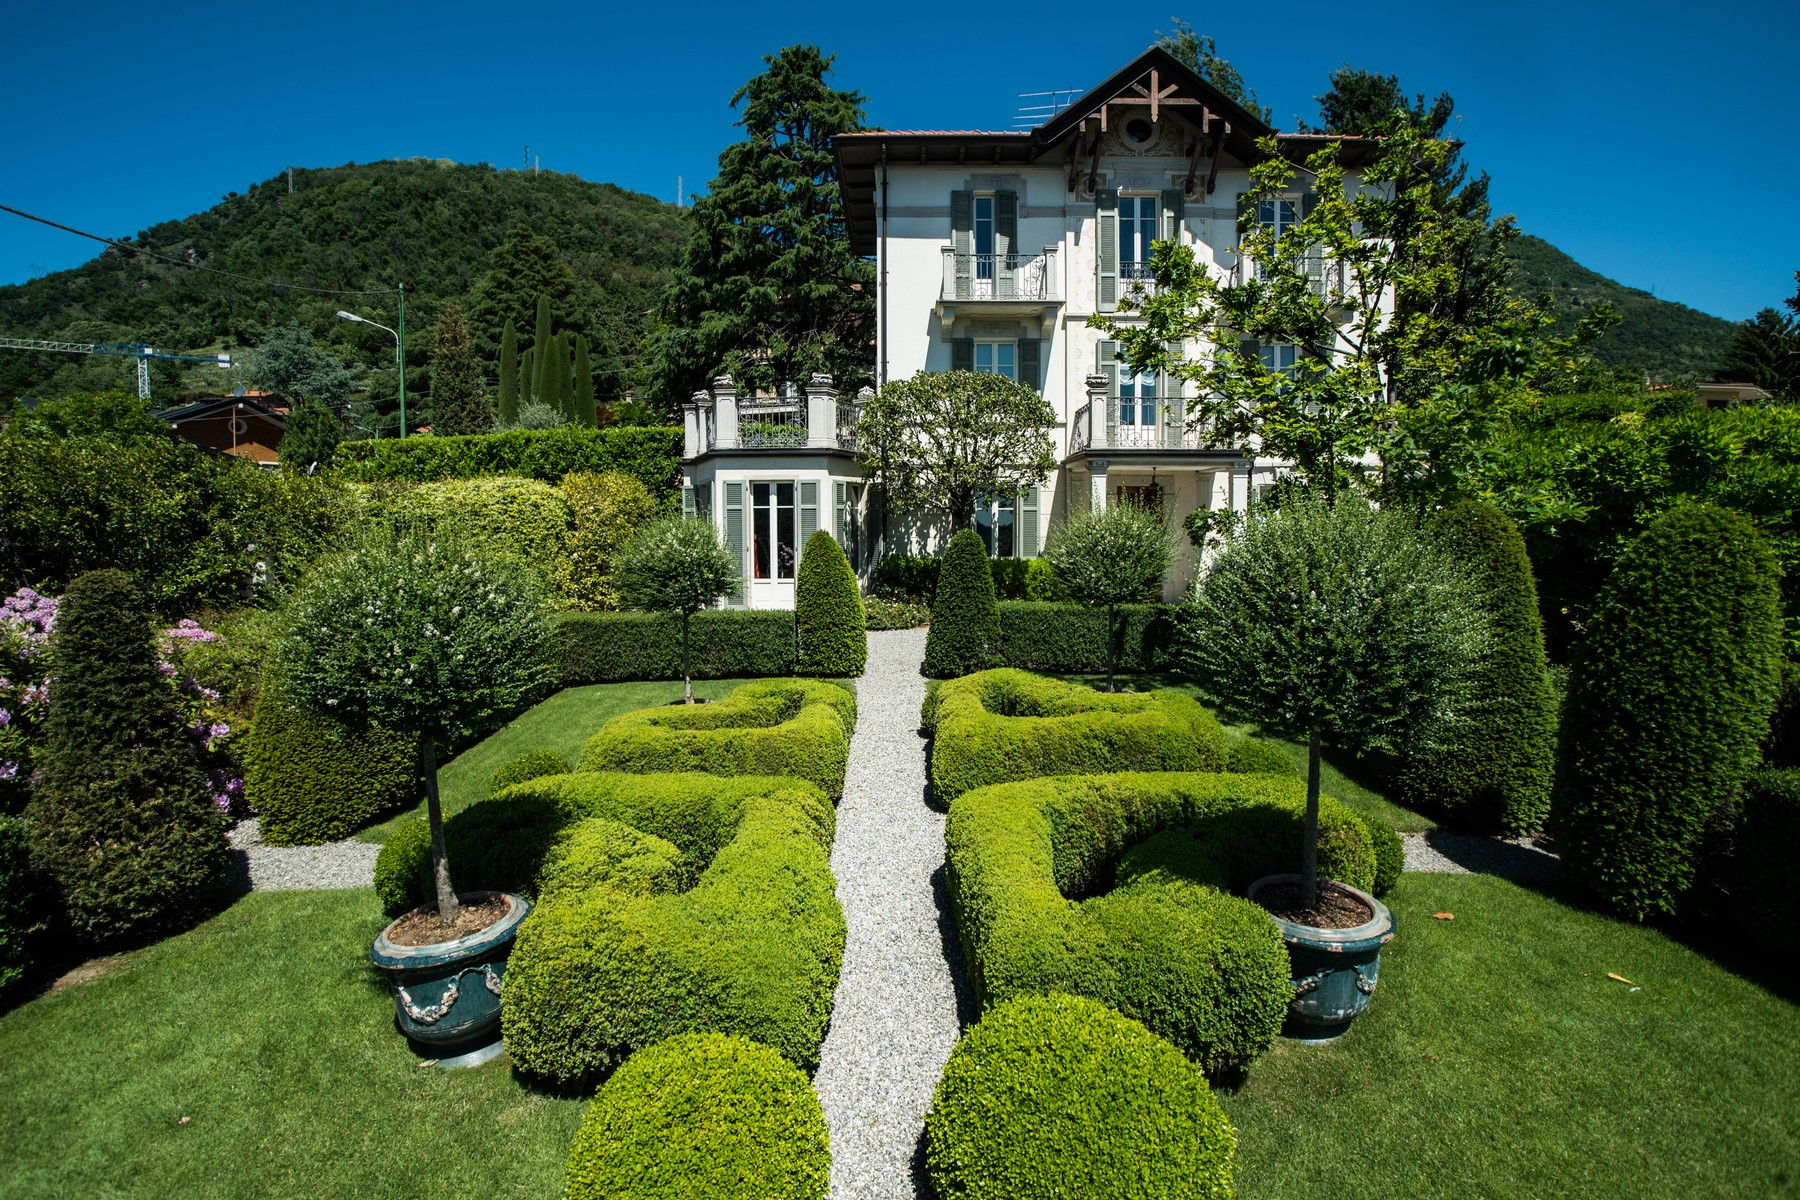 Additional photo for property listing at Gorgeous villa with dependance overlooking Lake Como Via Vittorio Veneto Cernobbio, Como 22012 Italien